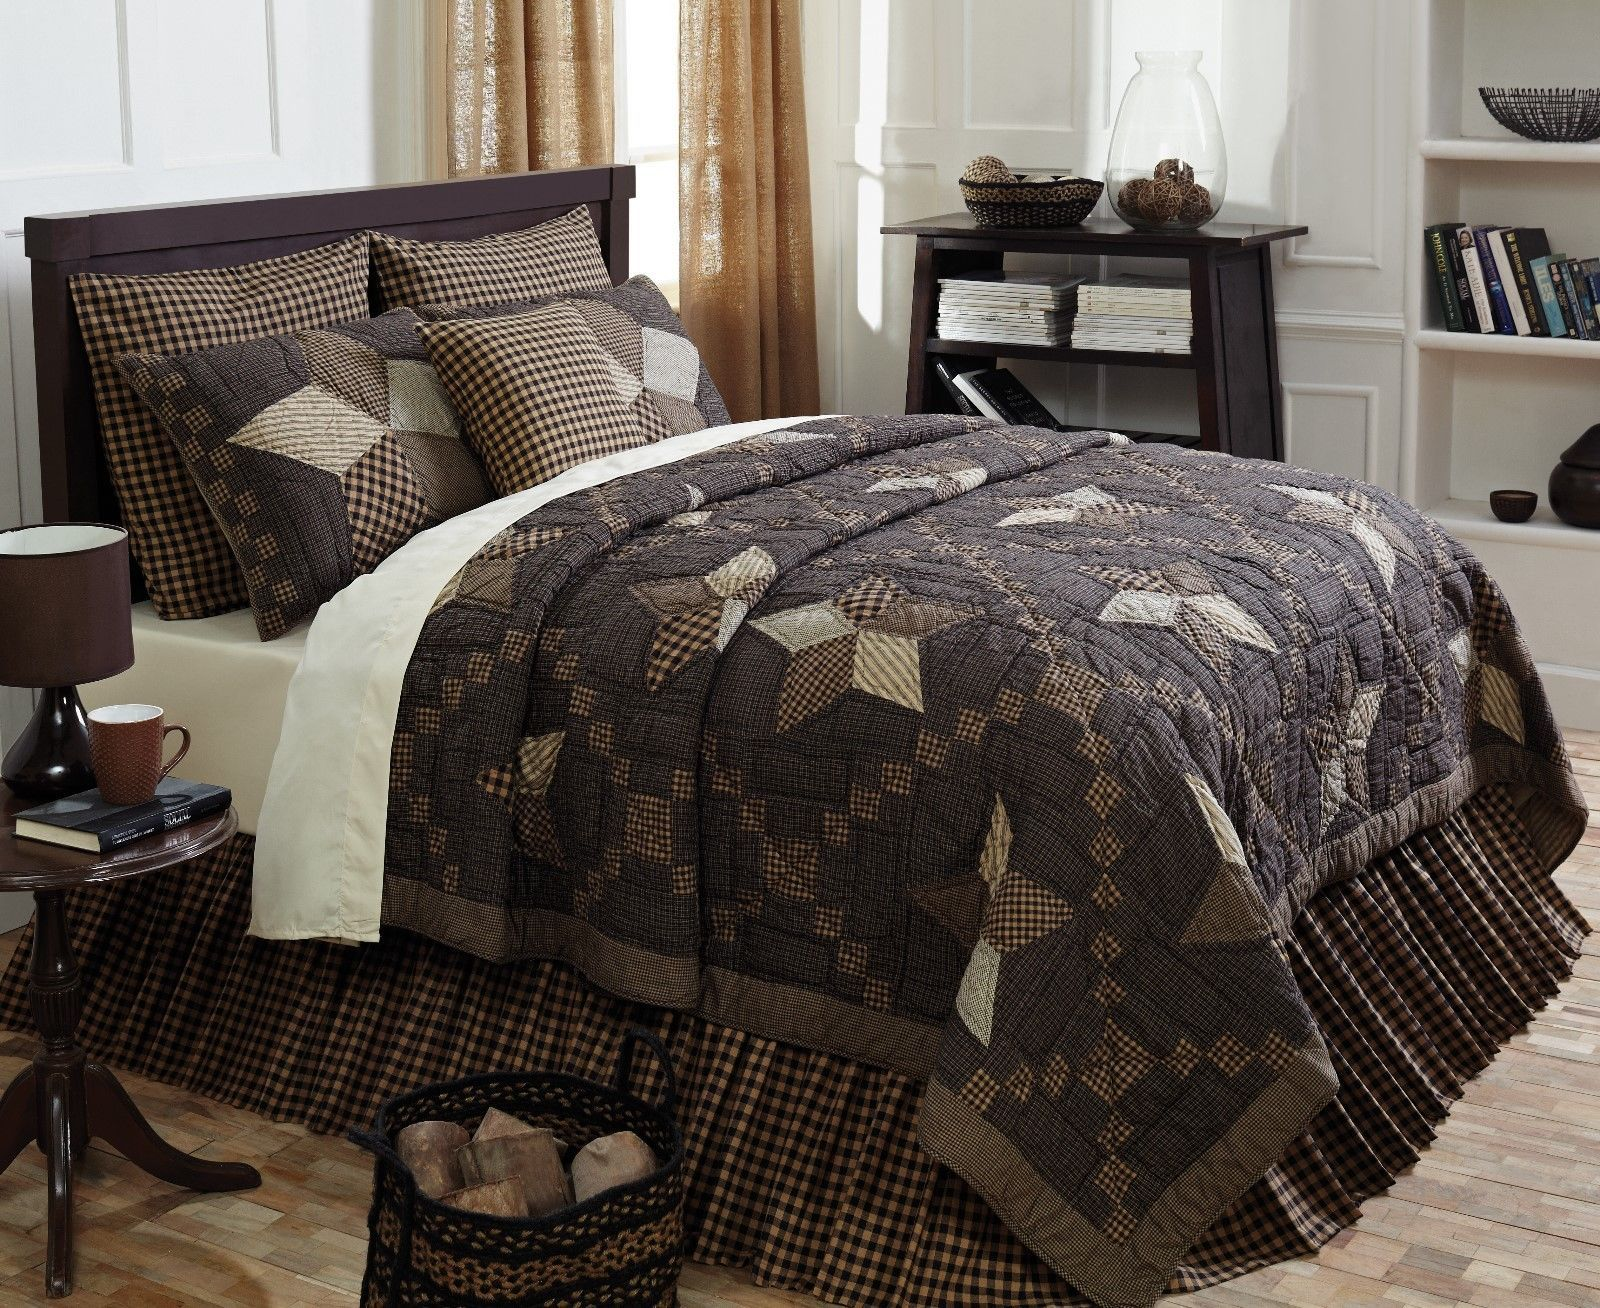 6-pc California King - FARMHOUSE STAR Quilt Country Set - Black and Tan - VHC